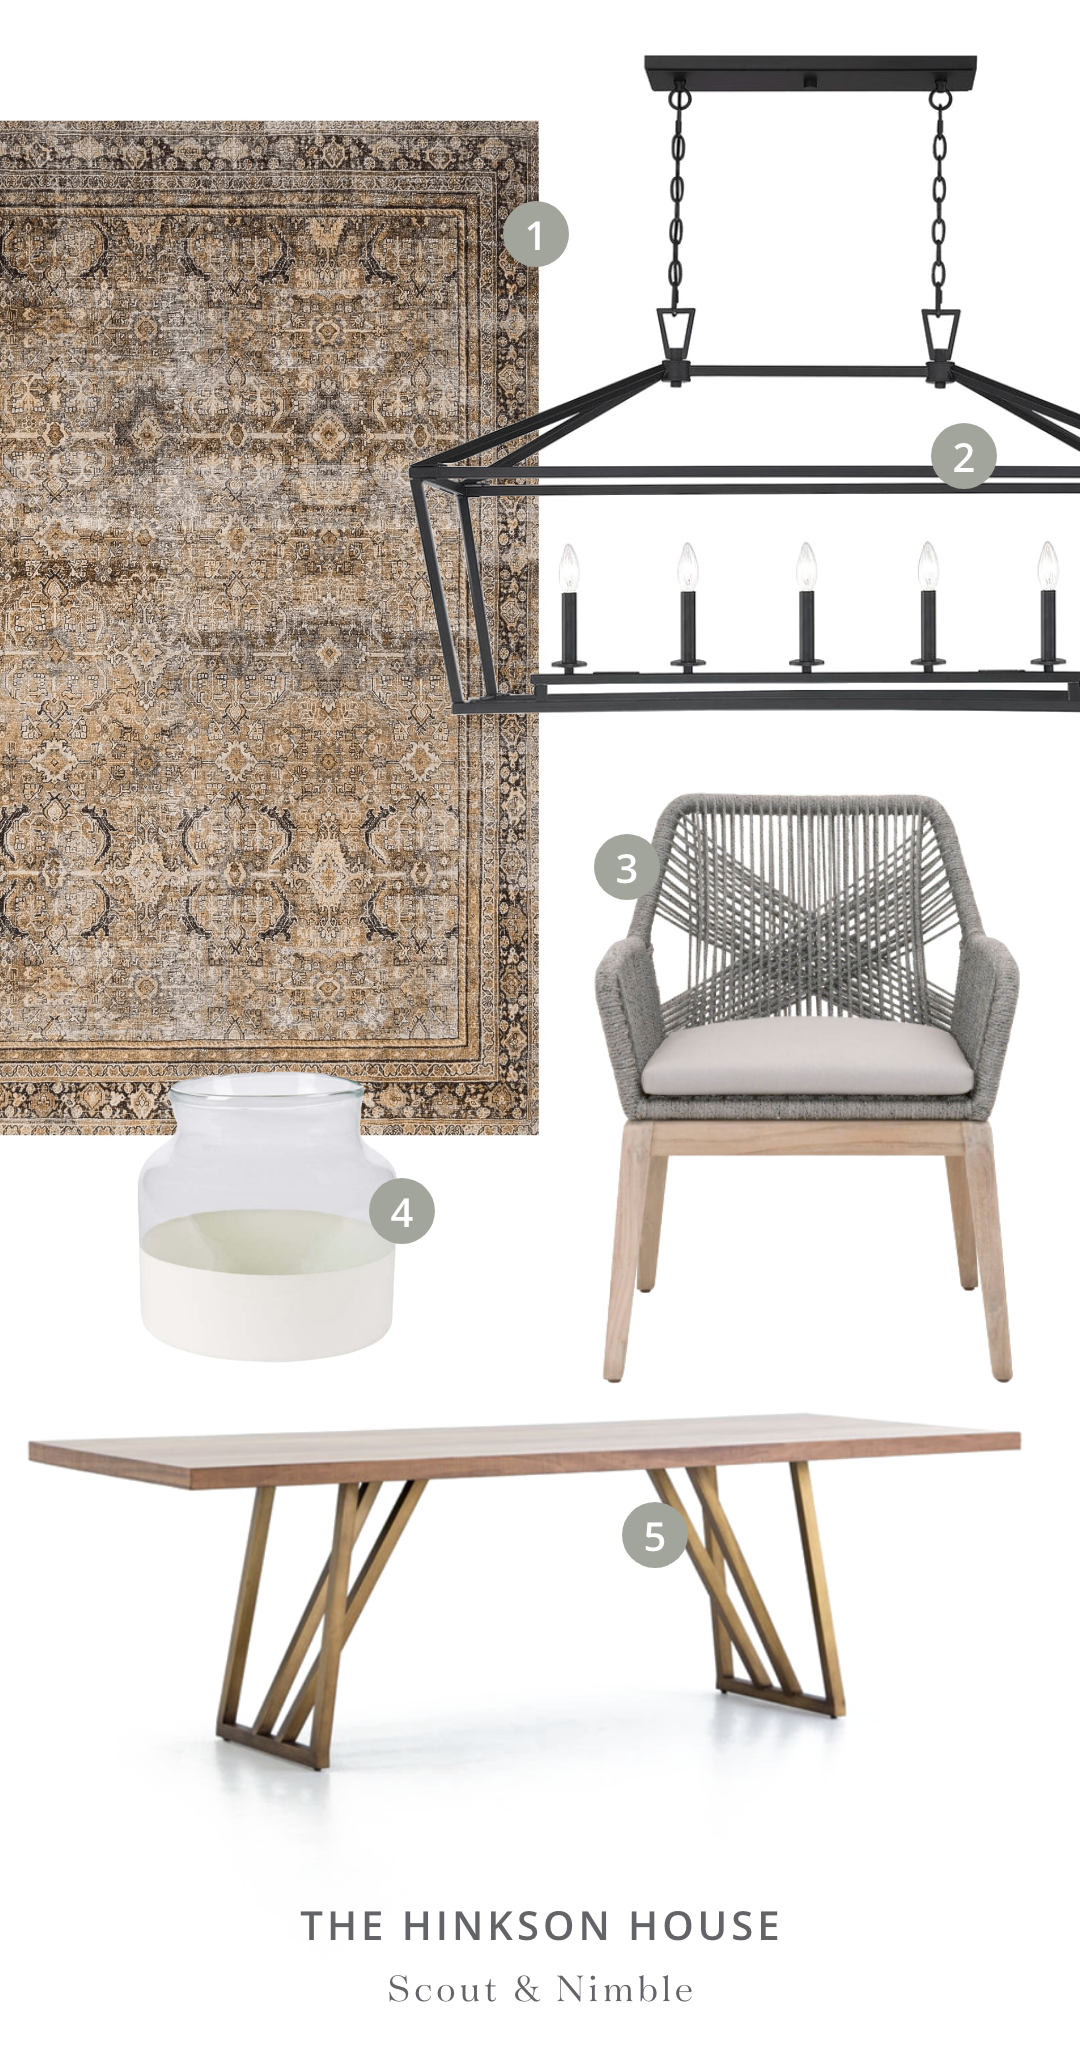 SHOP THE ROOM    |  1.  Layla Rug in Olive/Charcoal  2.  Townsend 5 Light Trestle  3.  Loom Dining Chair (Set of 2)  4.  White Color Block Flower Vase  5.  Kapri Dining Table